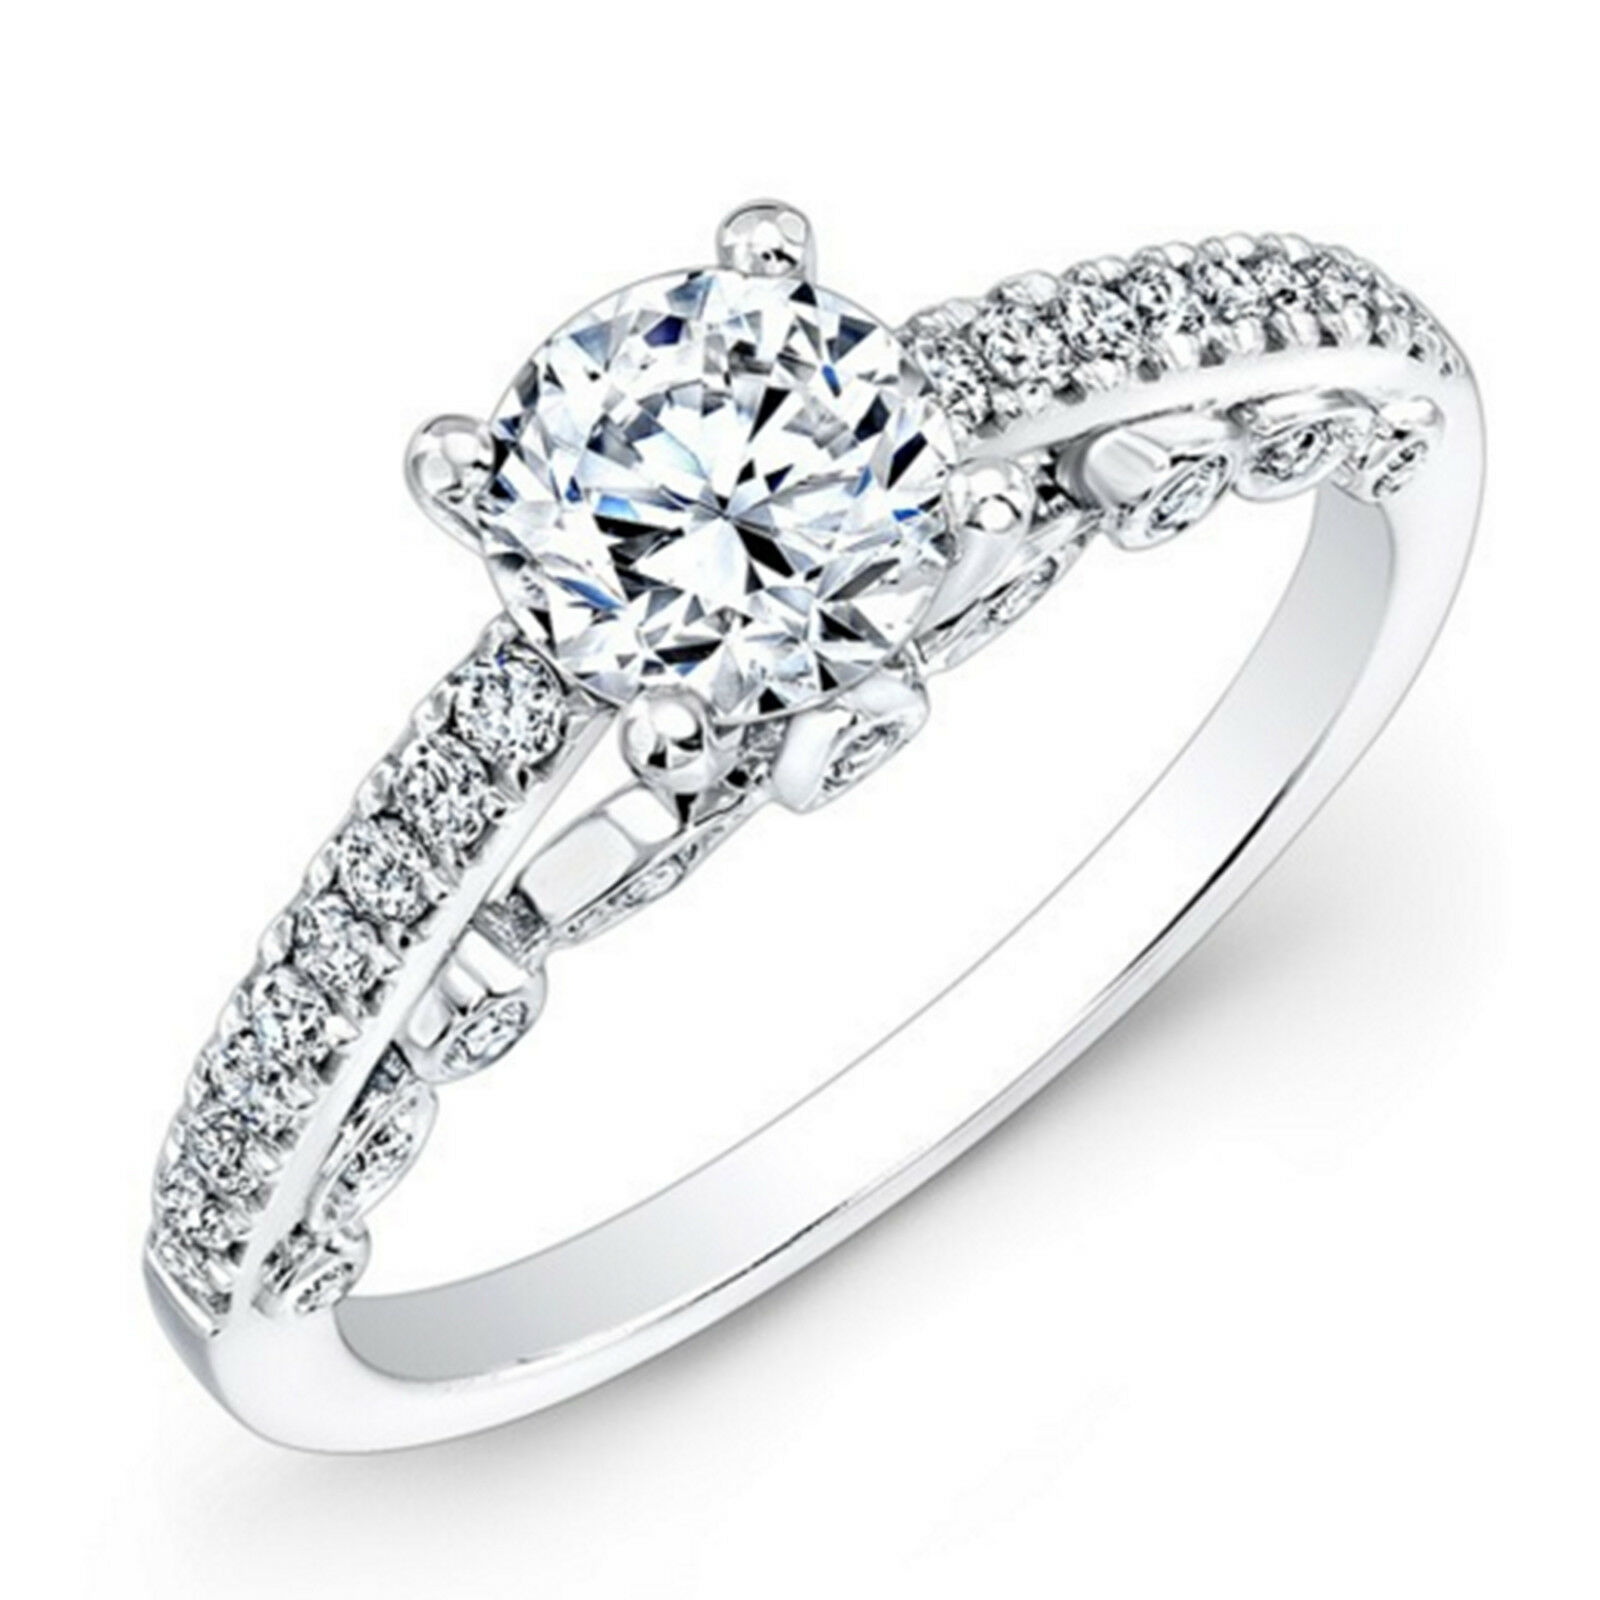 0.64 Ct VS1 Real Diamond Engagement Ring 14K White gold Rings Size 4 5 6